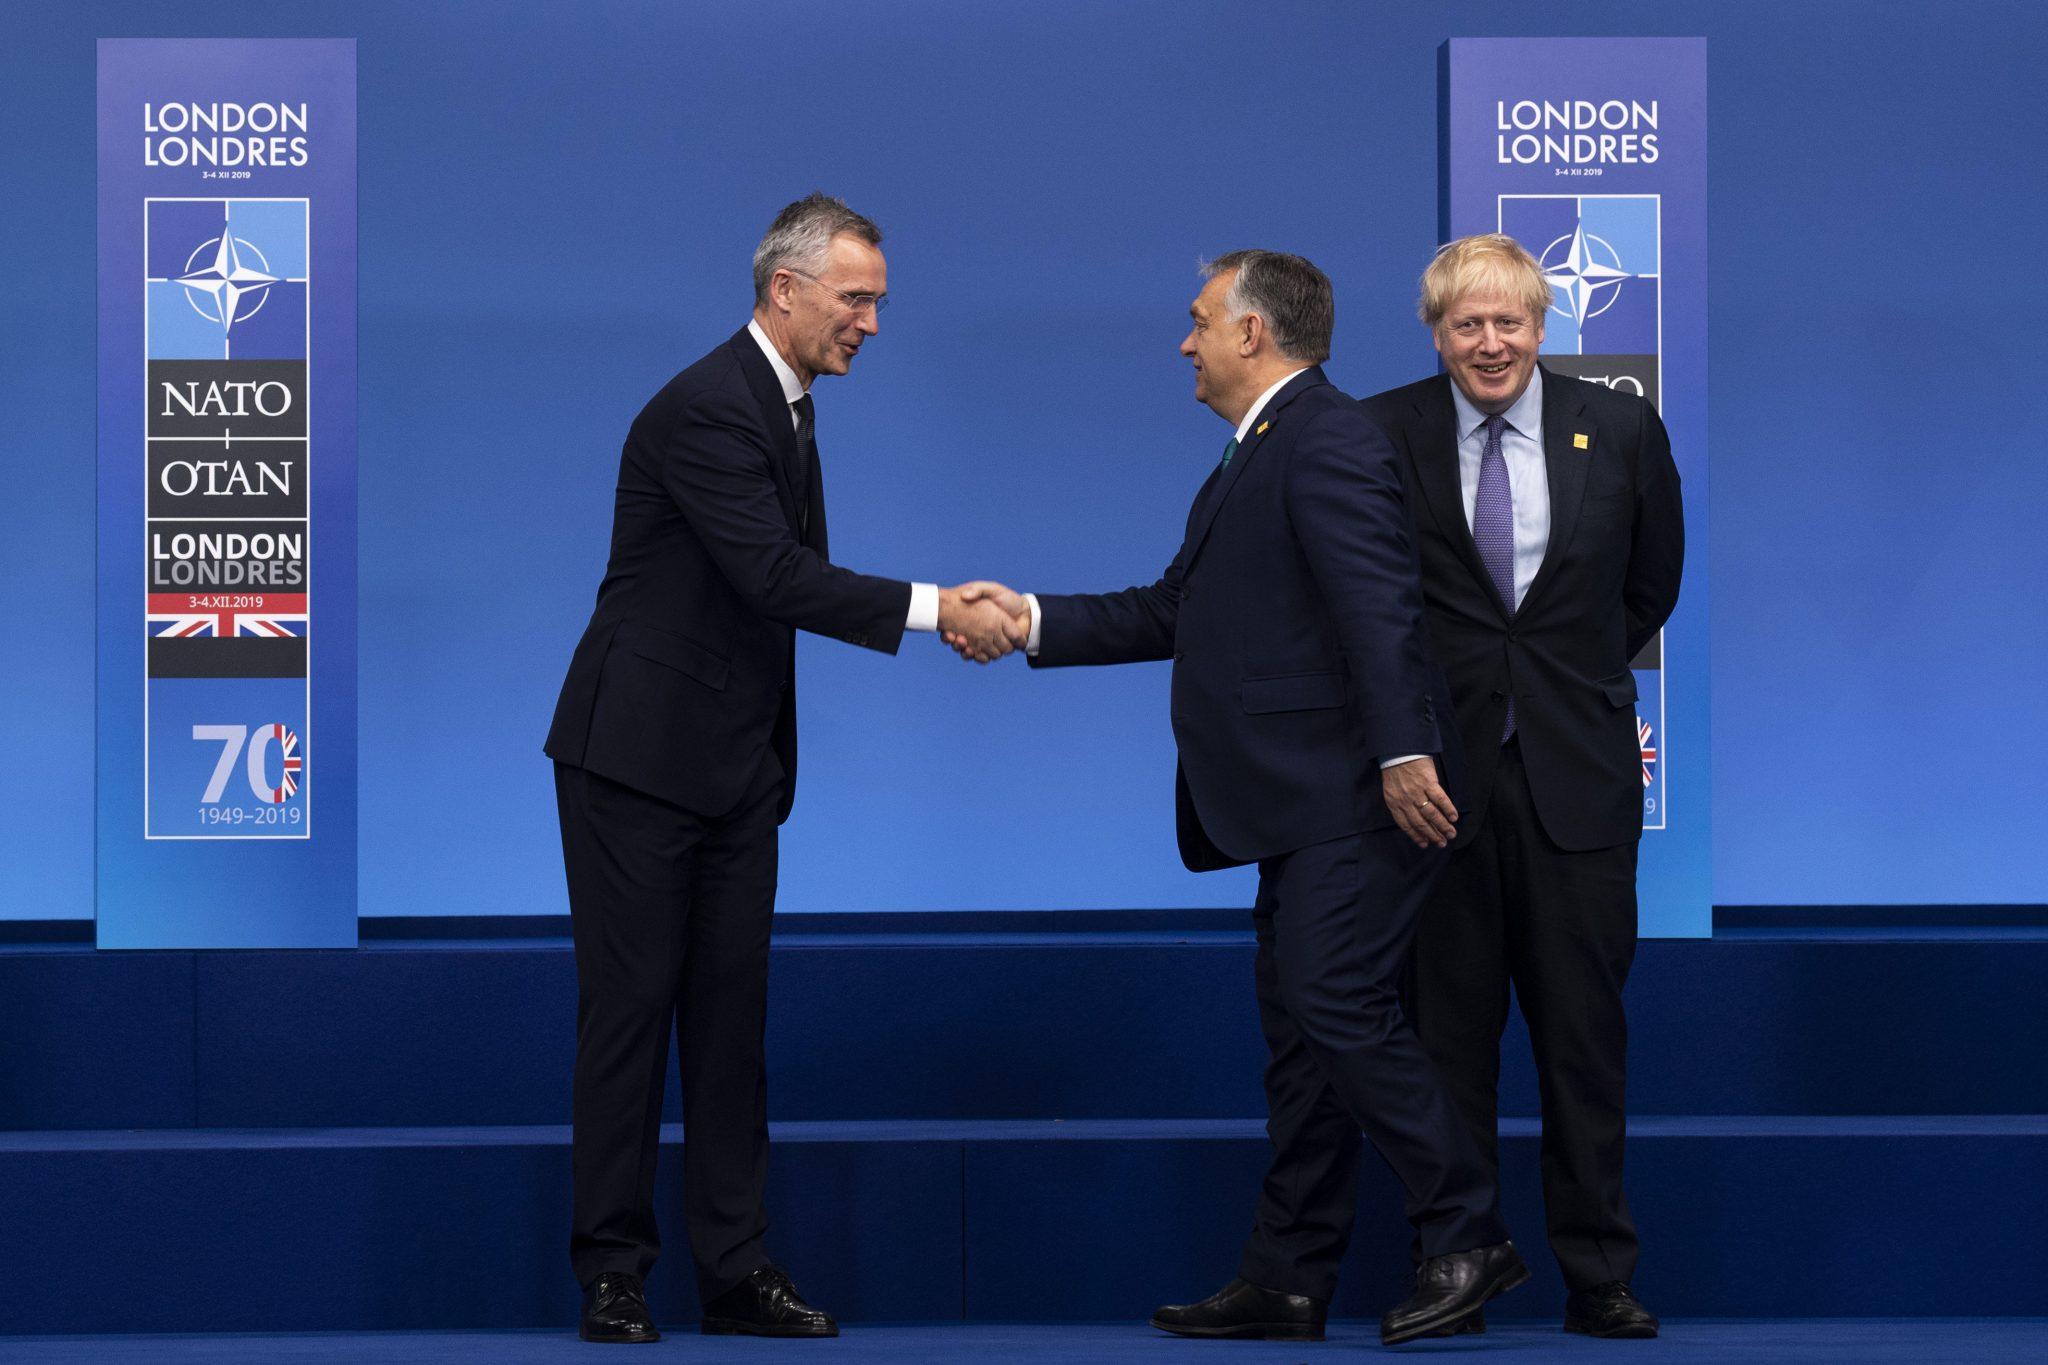 Orbán: NATO's Recognition of Migration as Security Challenge 'Major Step' post's picture